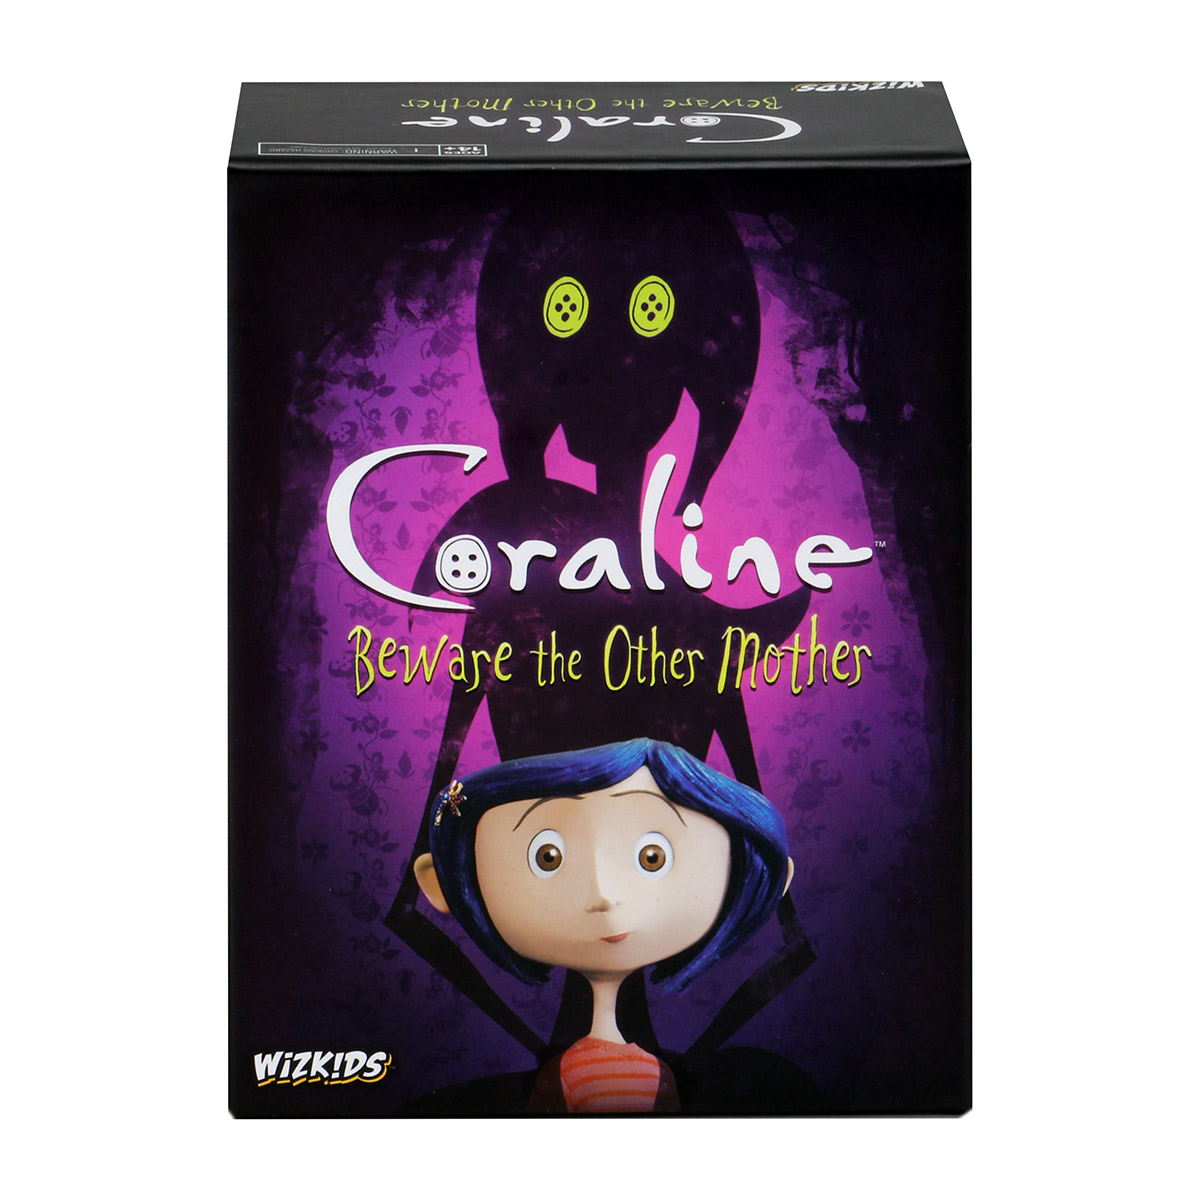 Coraline Beware The Other Mother Wizkids